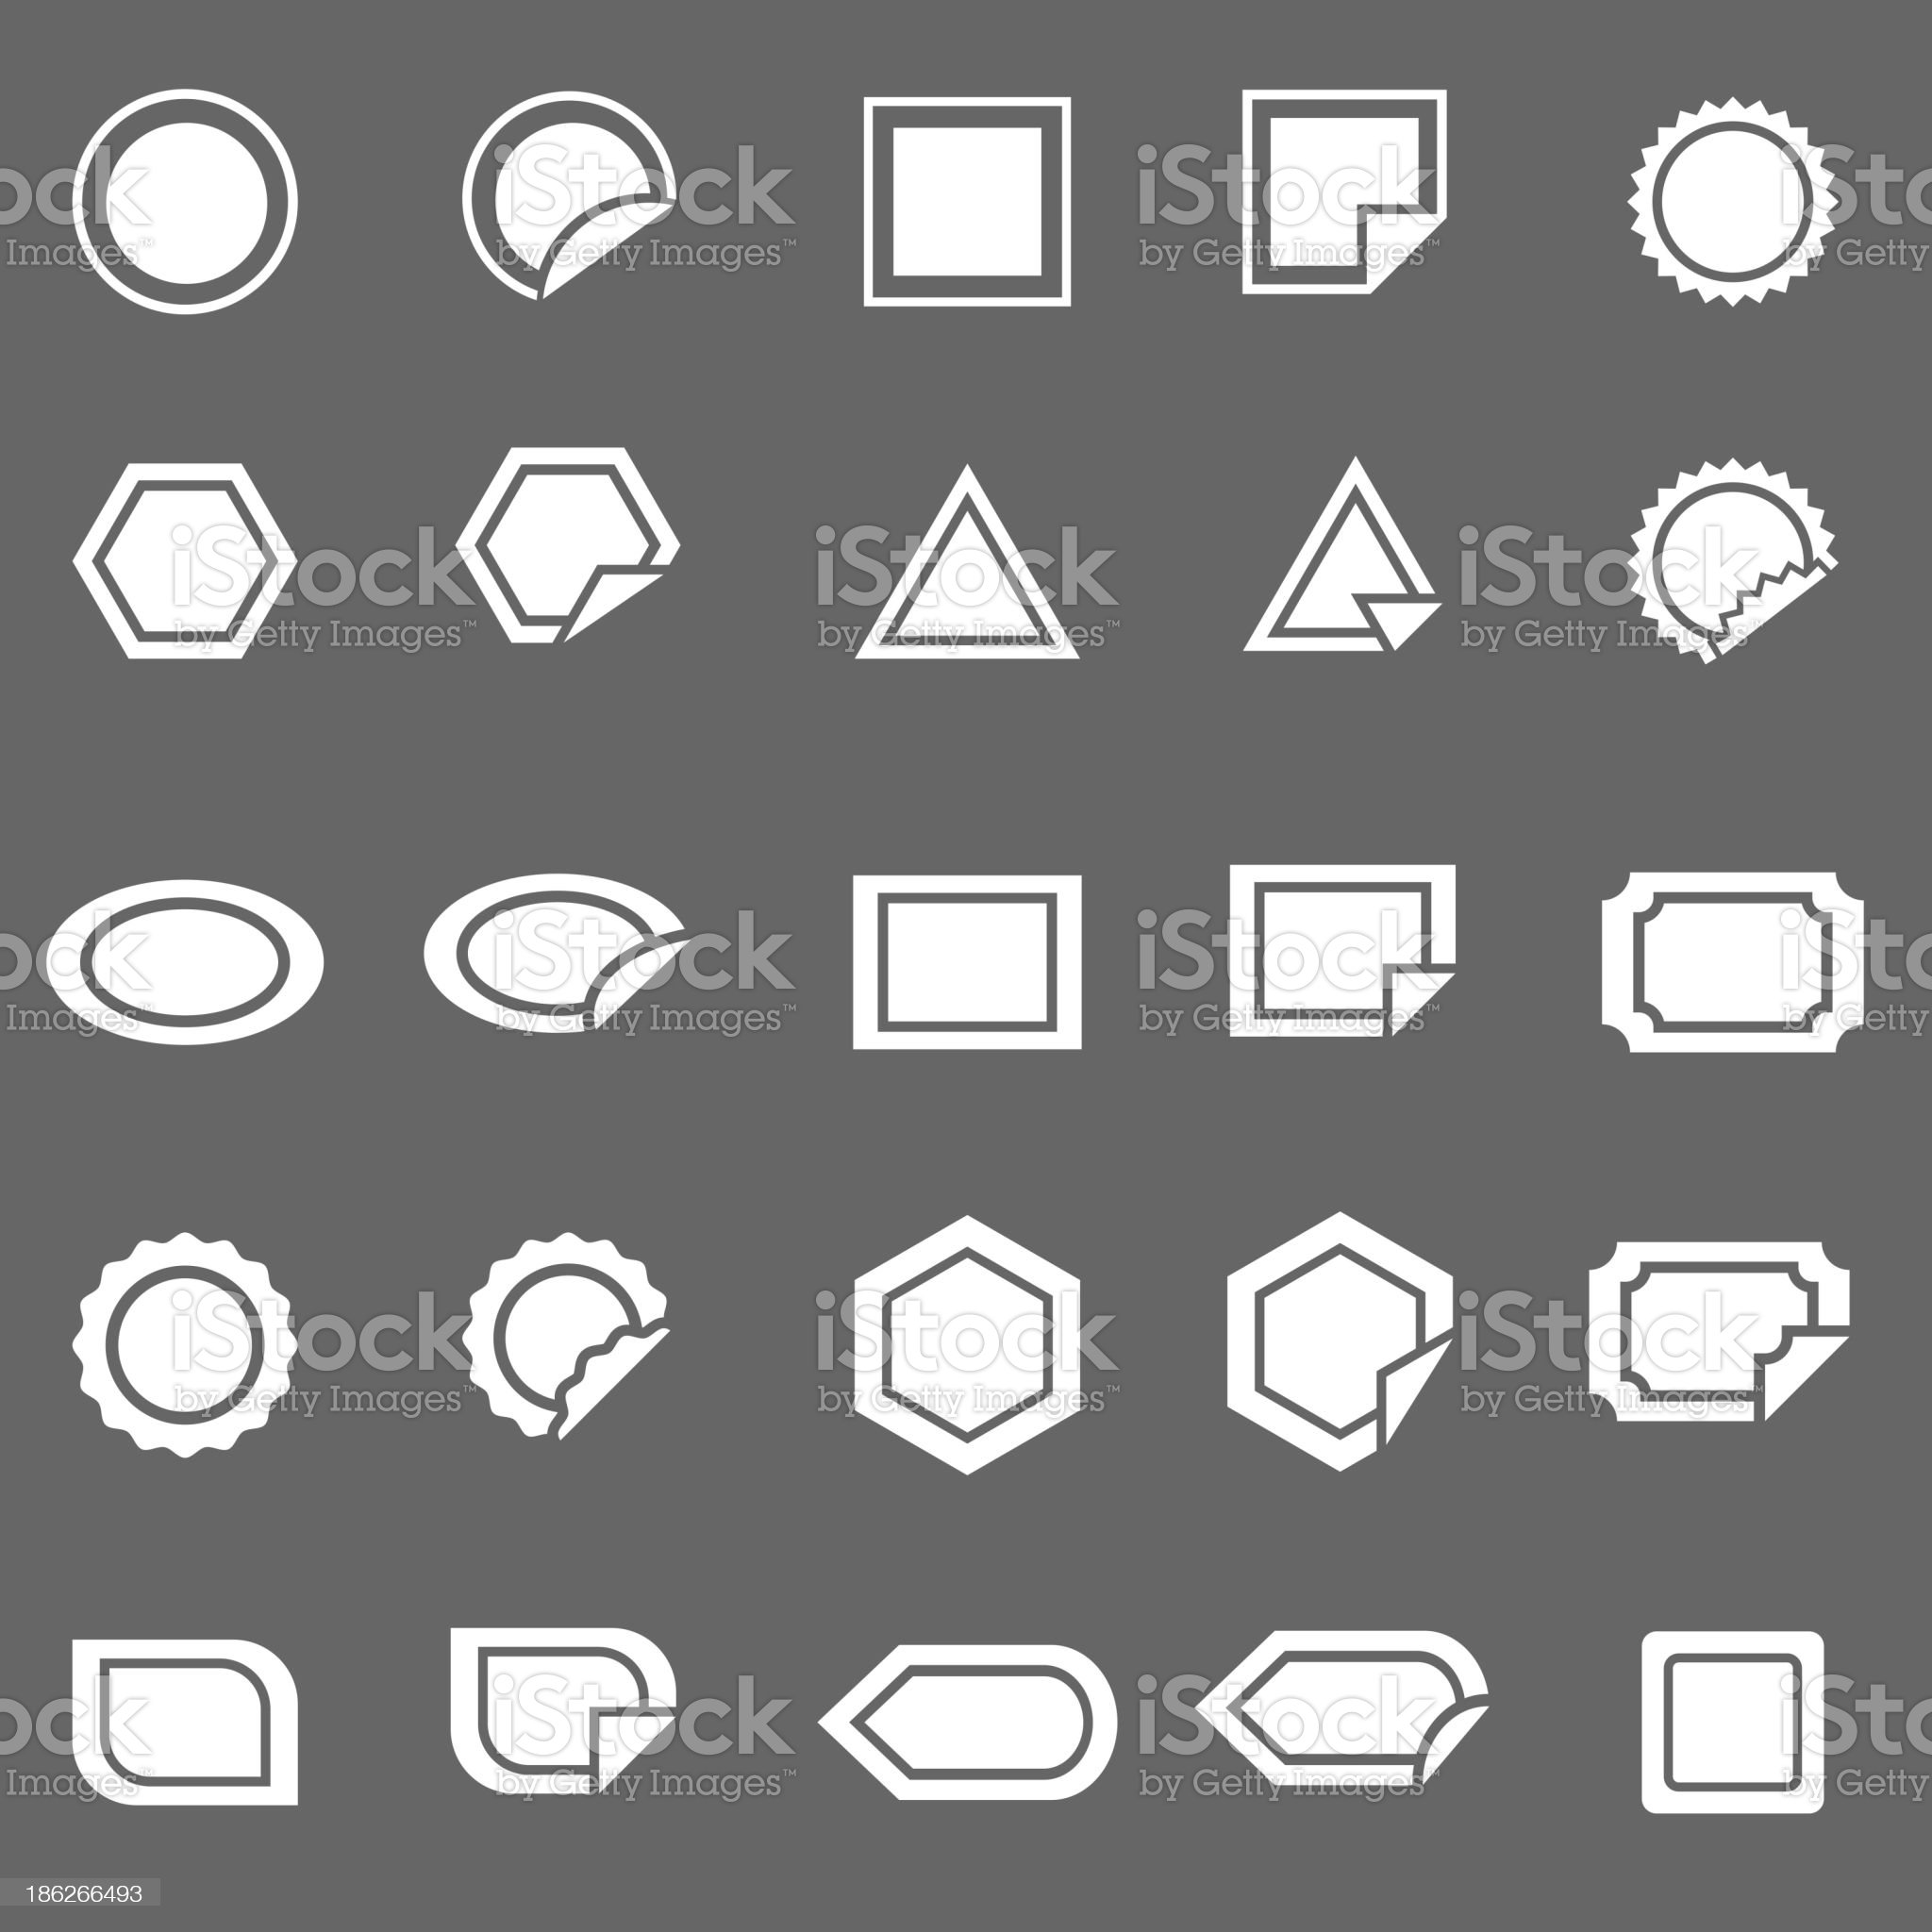 Label icons on gray background royalty-free stock vector art